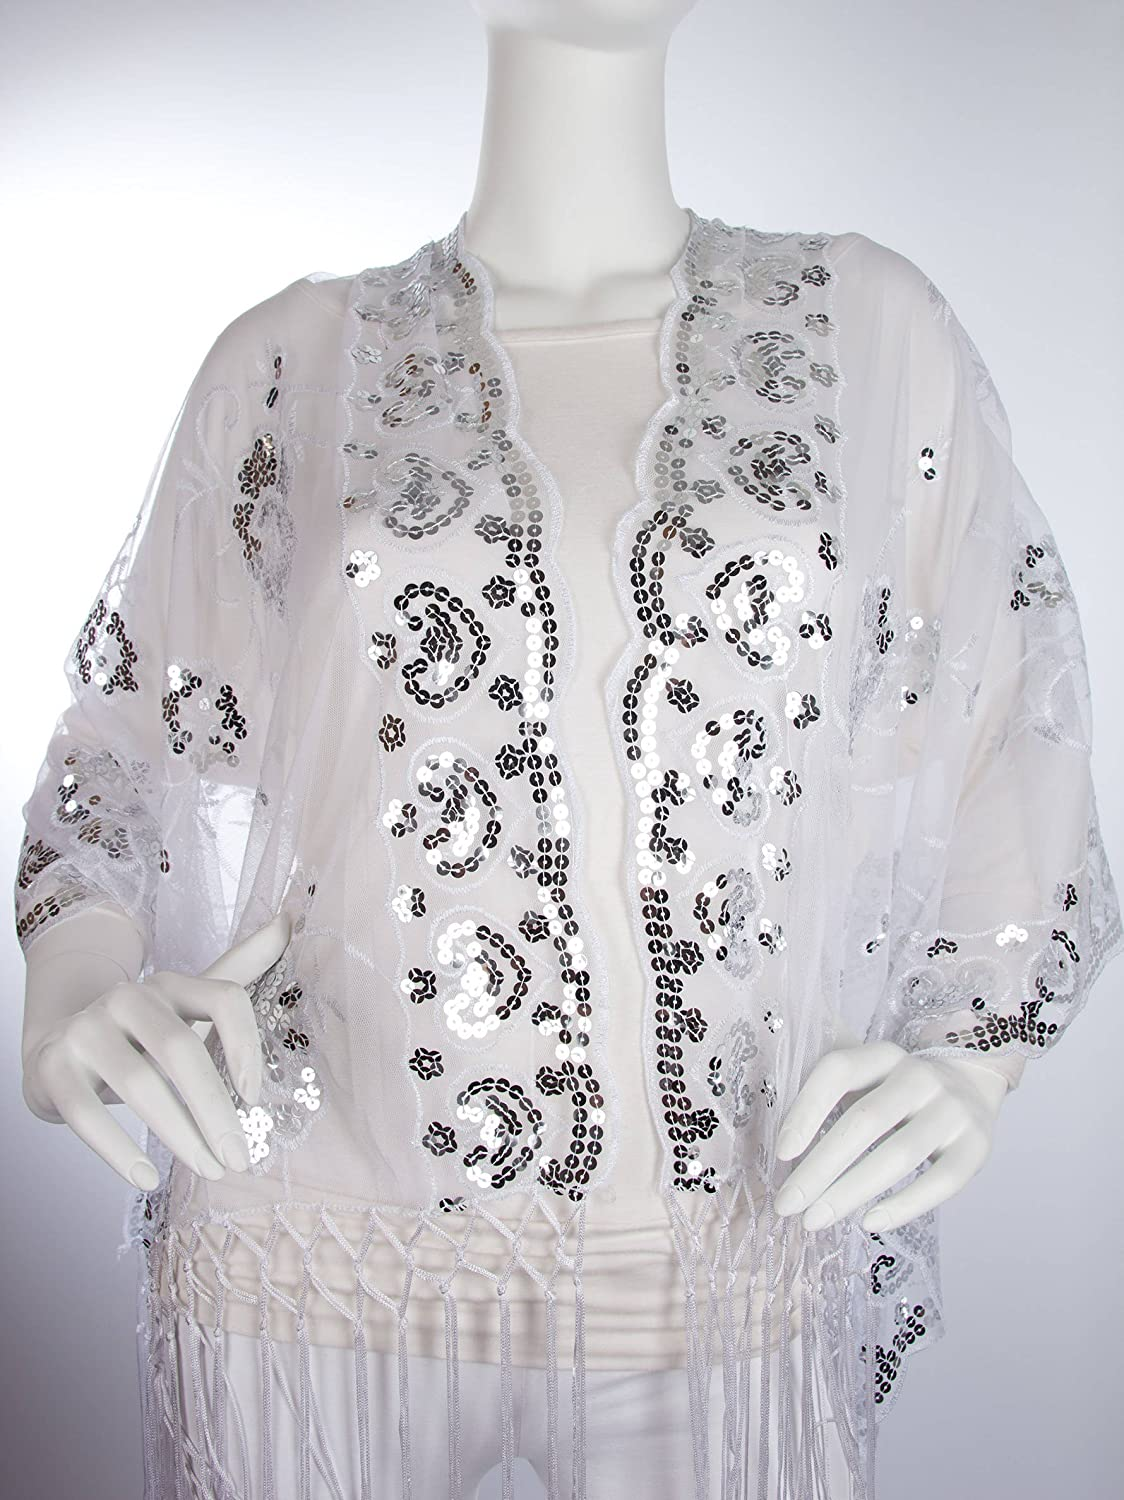 1920s Shawls, Scarves and Evening Jacket Tips Madison Shawl Long Fringe Sequin Evening Wrap $16.95 AT vintagedancer.com